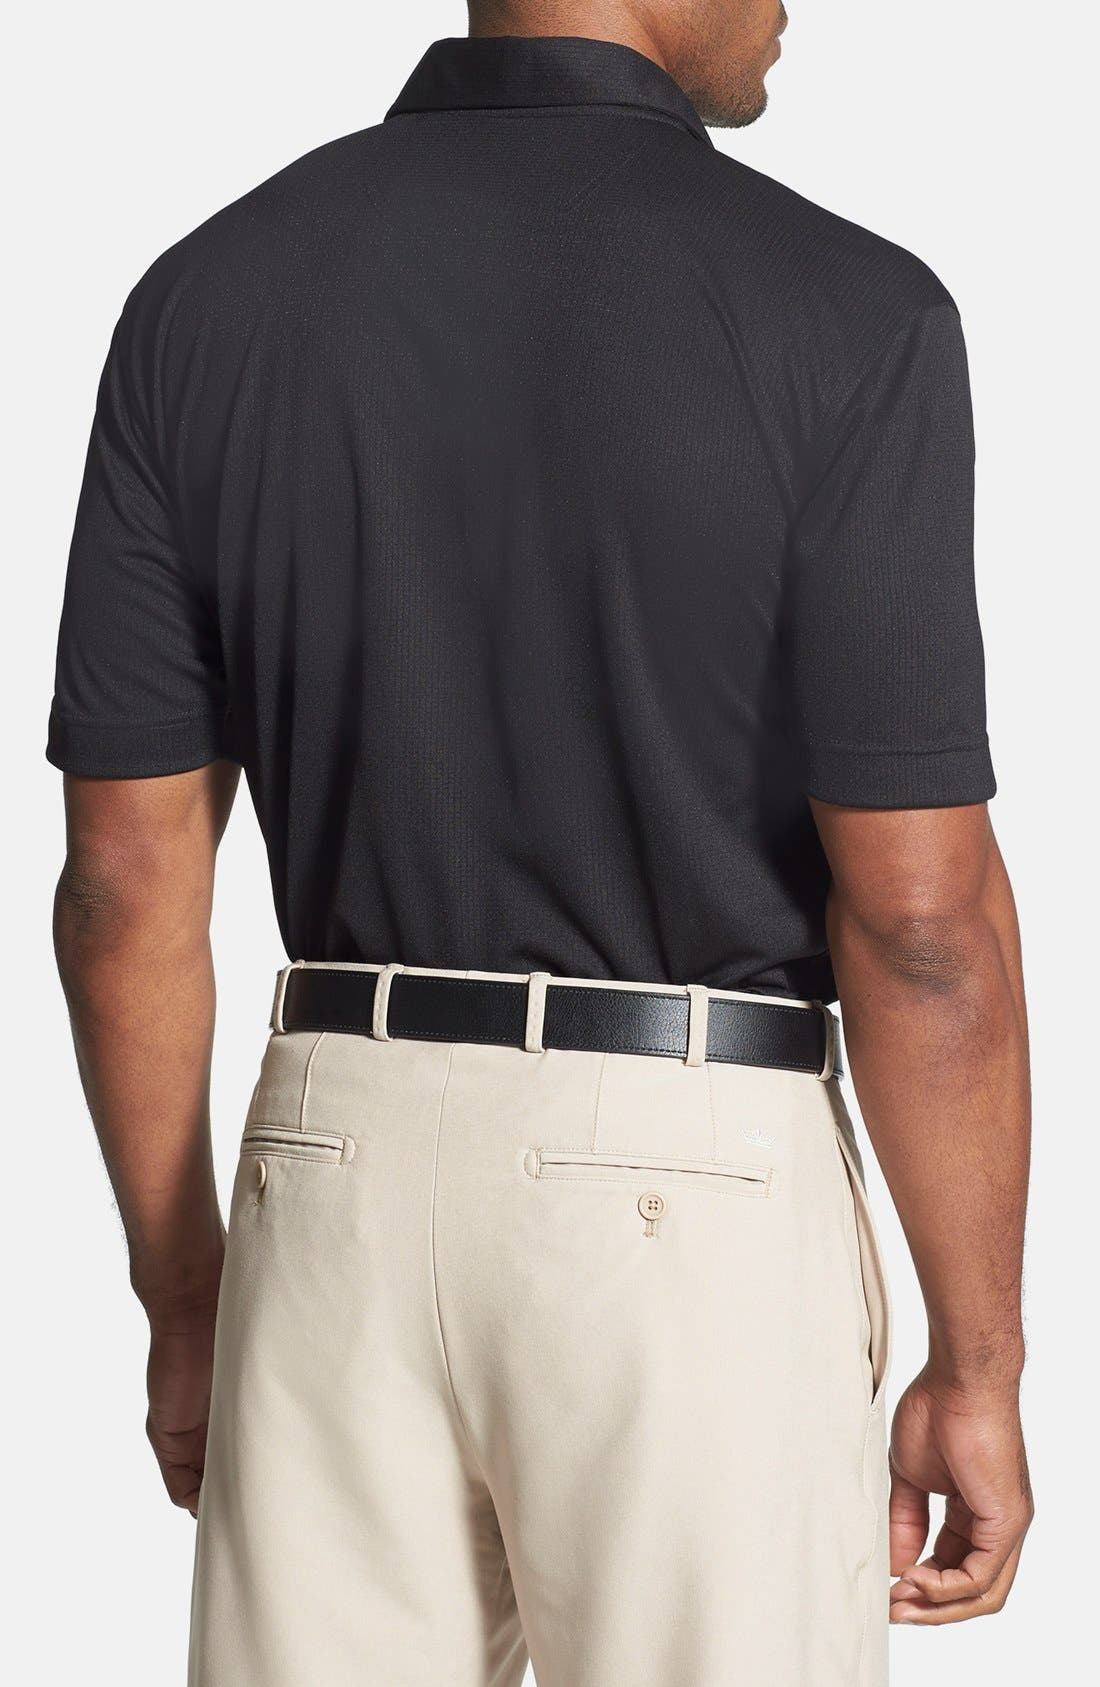 'Genre' DryTec Moisture Wicking Polo,                             Alternate thumbnail 2, color,                             BLACK